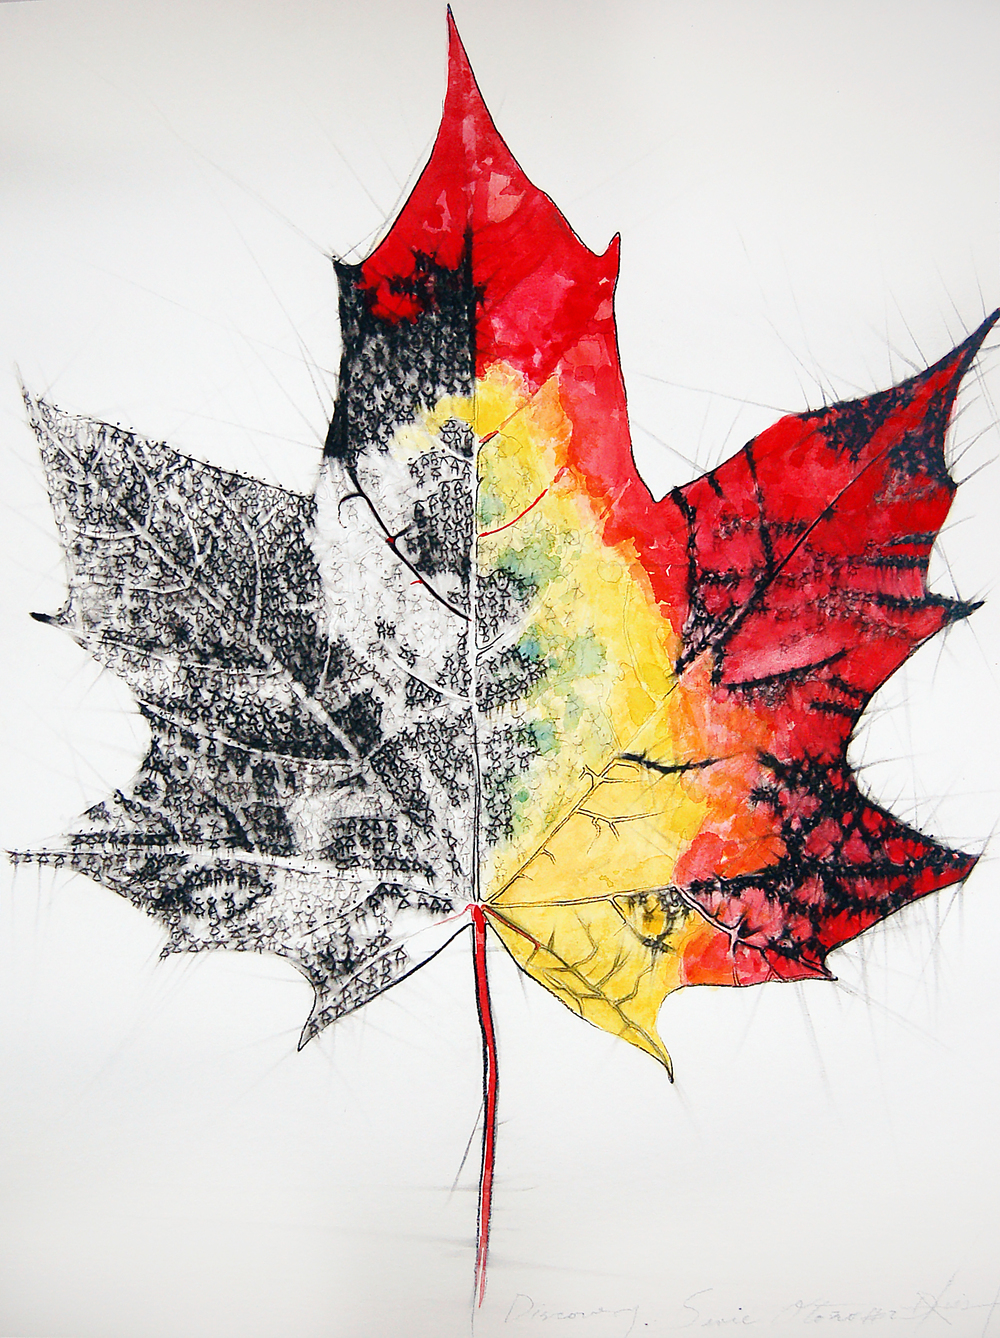 Discovery Series #2 (Maple Leaf), Charcoal and Watercolour on Paper, 45cm x 61cm